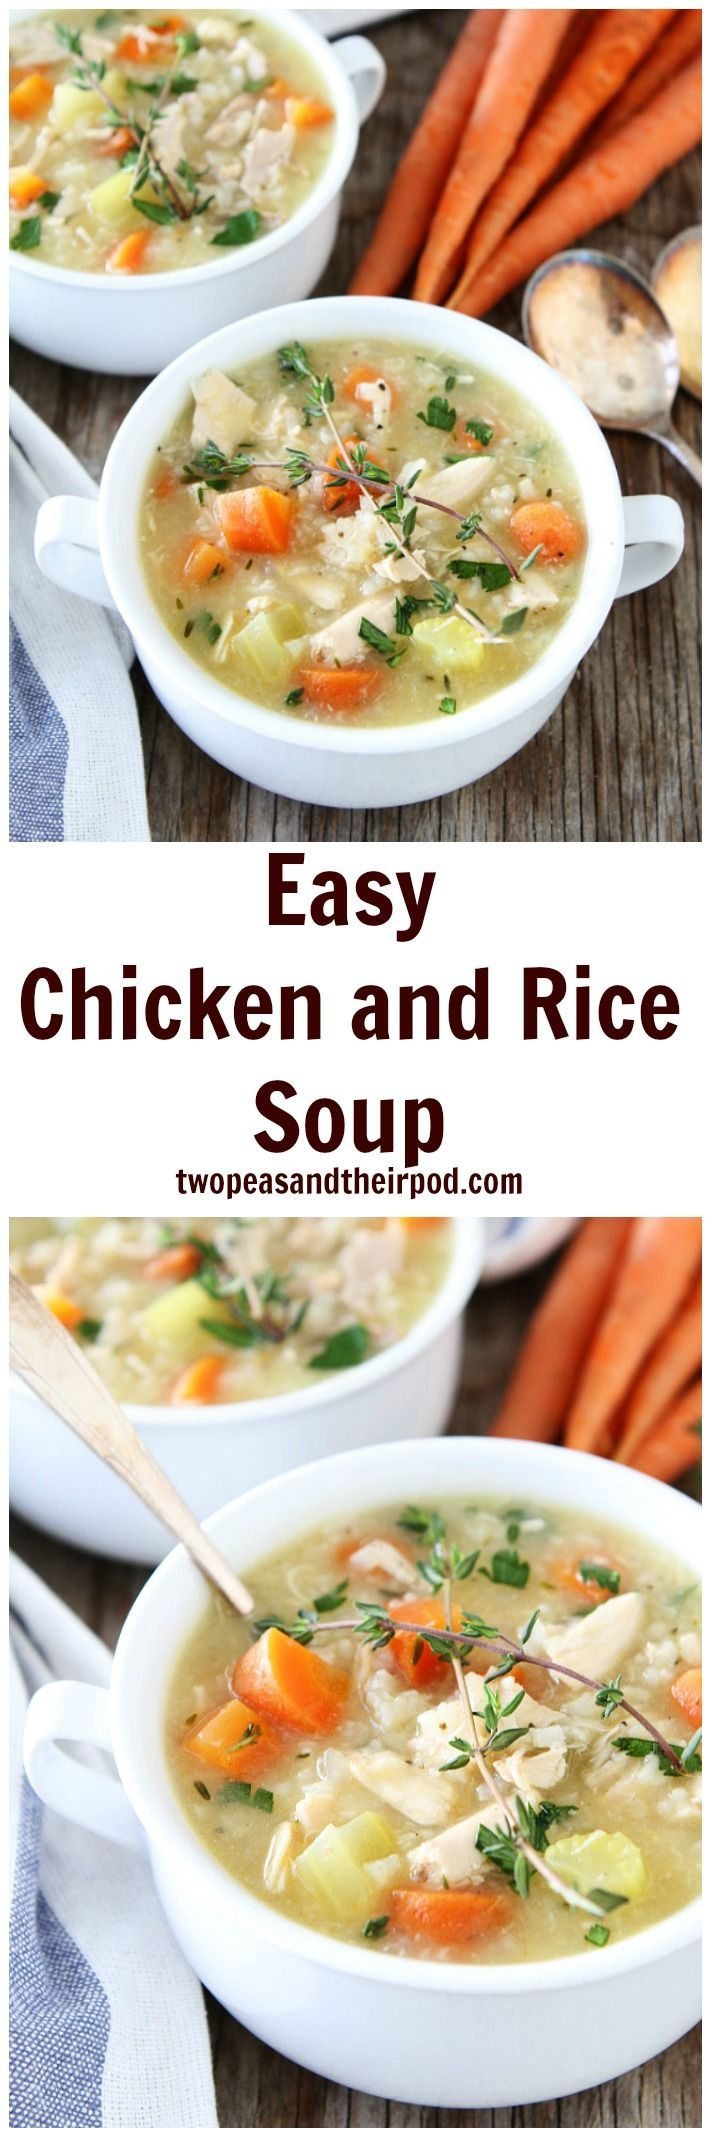 Easy Chicken and Rice Soup Recipe on http://twopeasandtheirpod.com This easy chicken soup recipe is a winter staple! It makes a great weeknight meal and comes in handy when you are feeling under the weather.